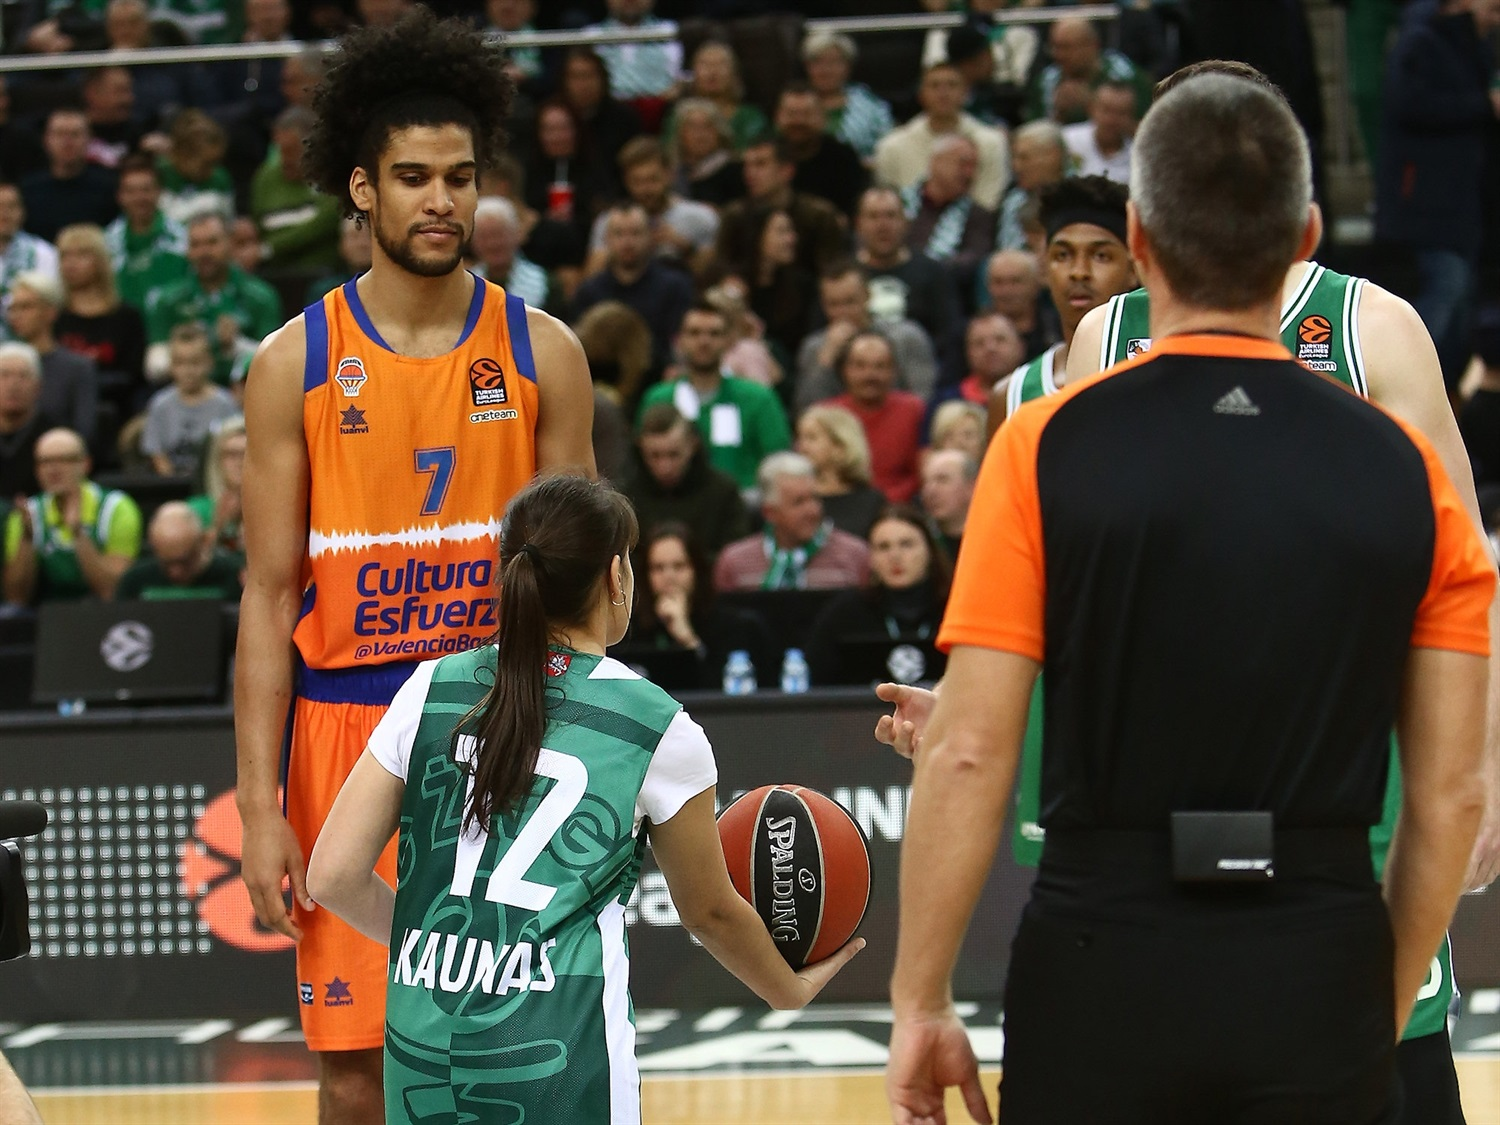 One Team Games - Zalgiris Kaunas vs. Valencia Basket - EB19_a94bqnkaildcpo6l